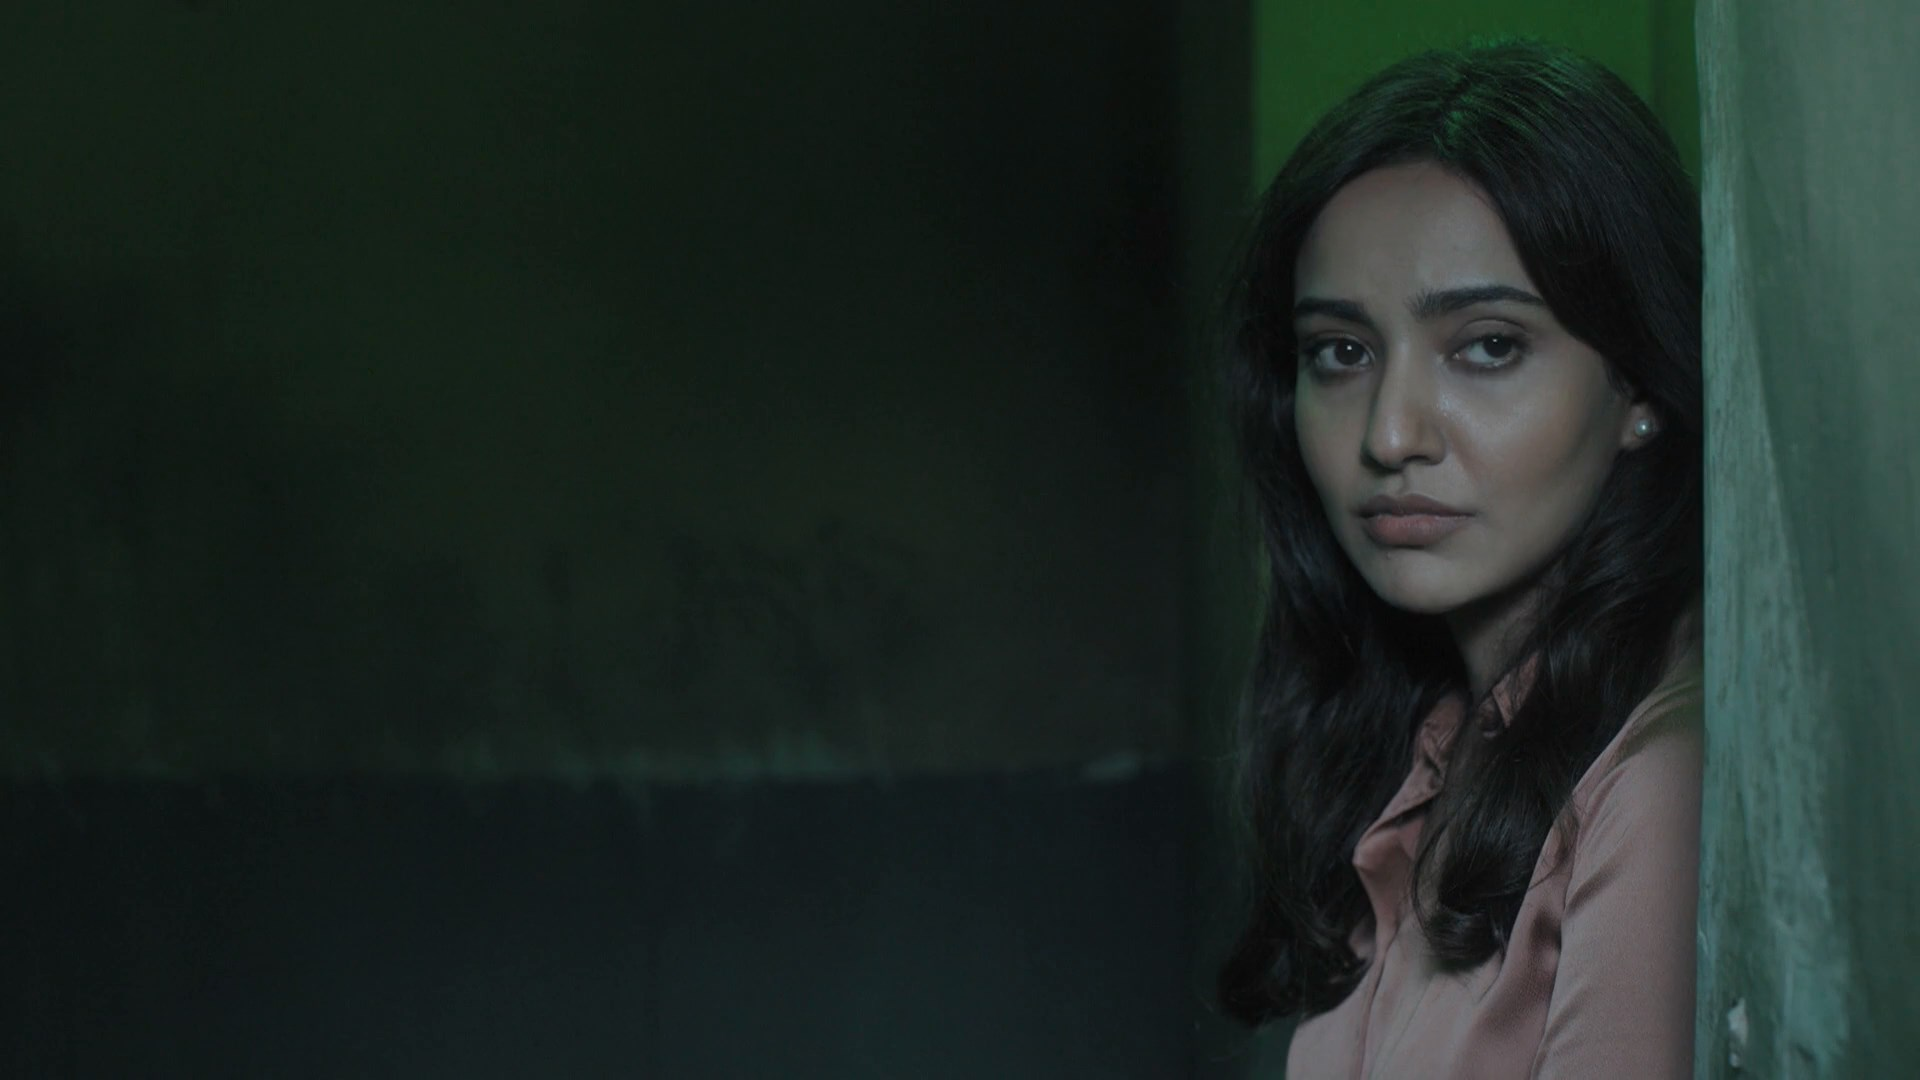 Illegal216b721 - Illegal 2020 Hindi S01 Voot Select Complete Web Series 480p HDRip 900MB x264 AAC